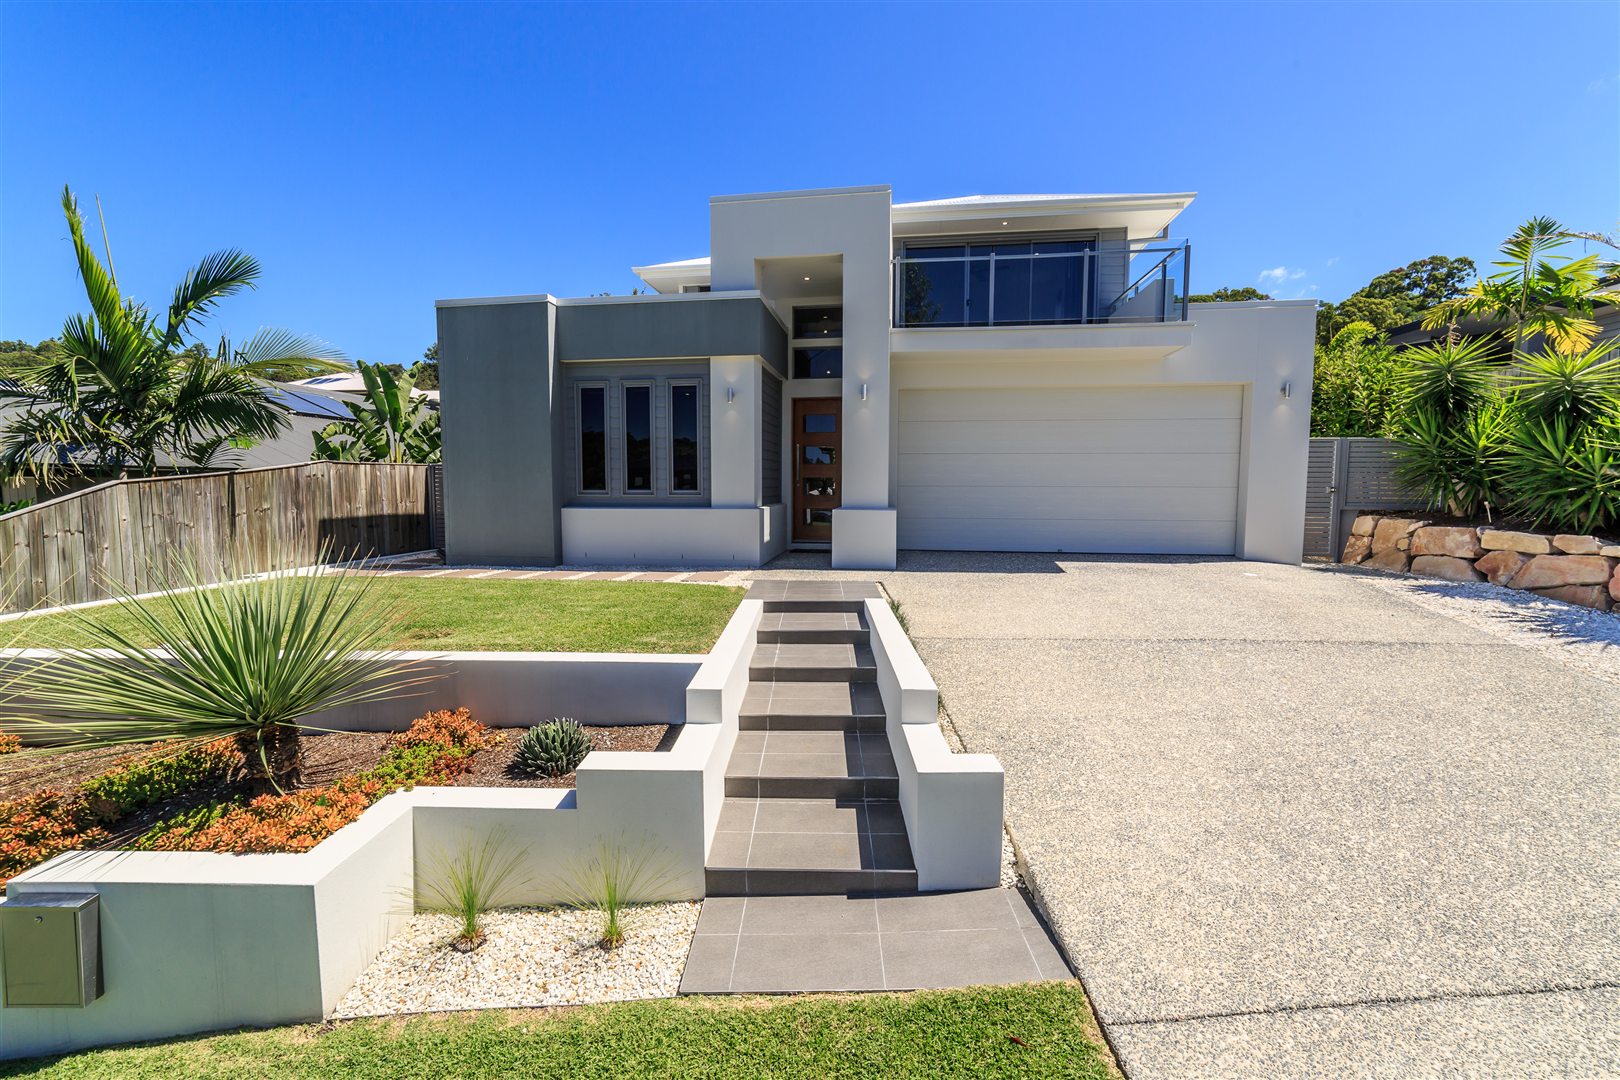 Harcourt house grand designs owners